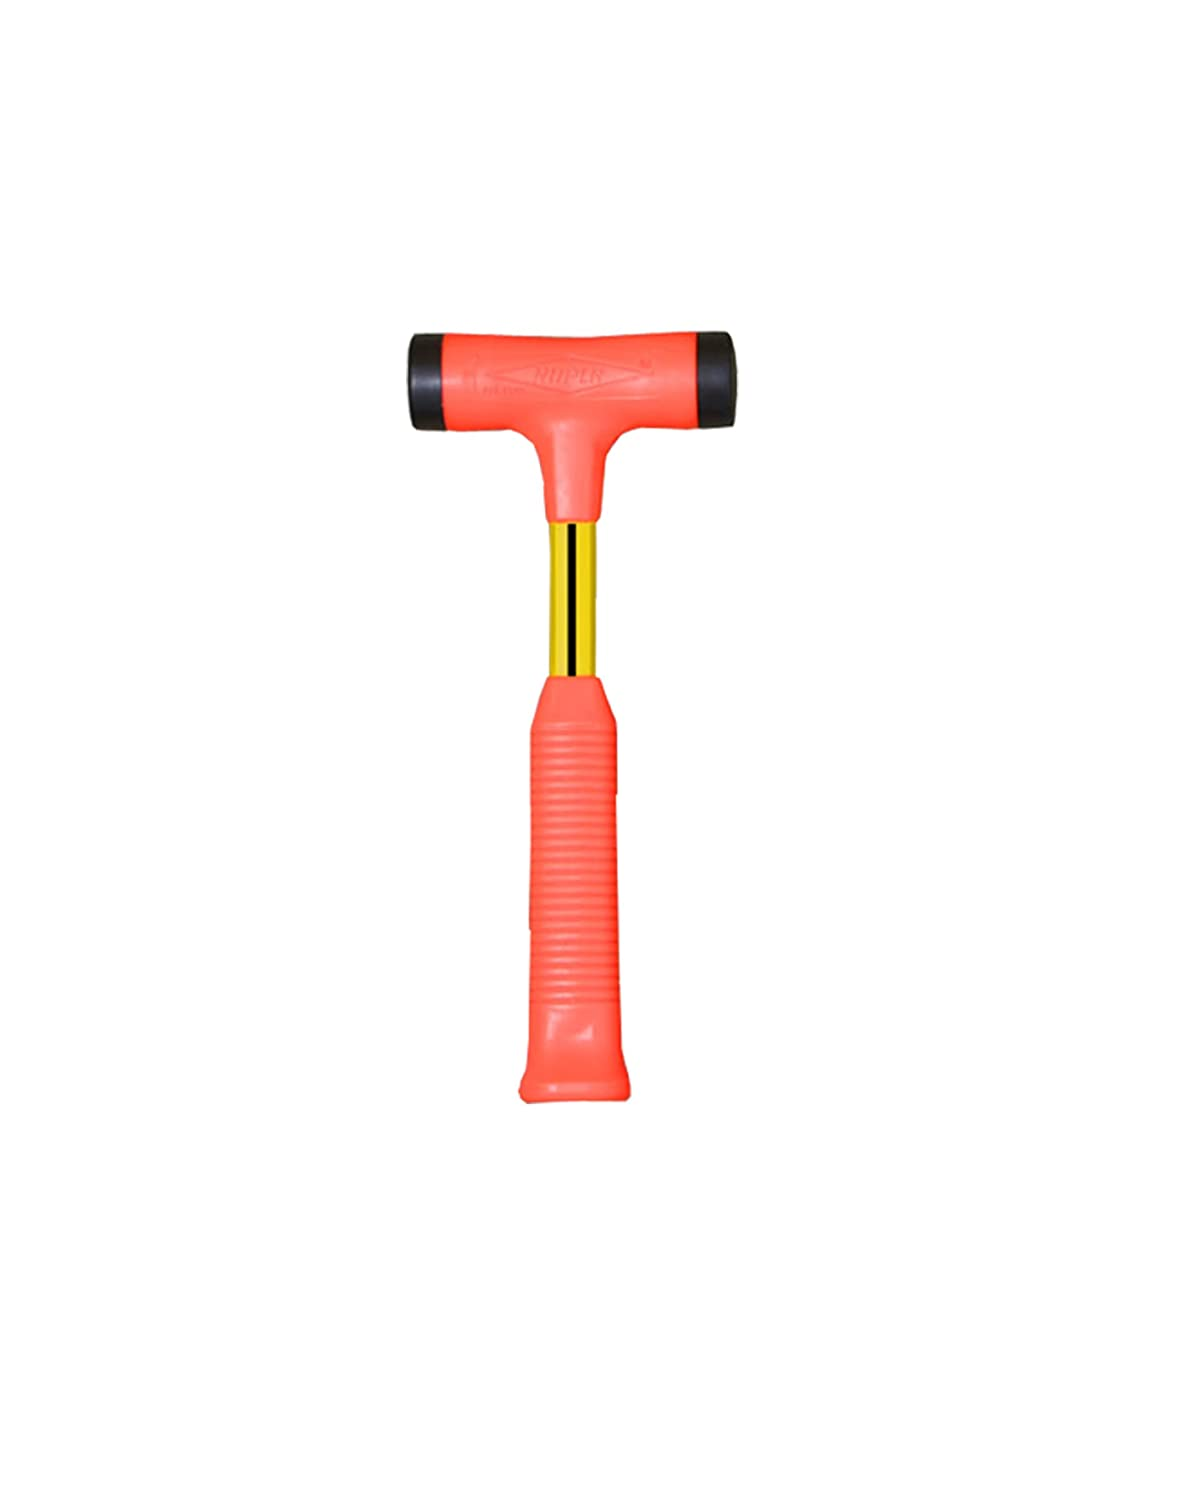 Nupla STPO24 Dead Blow Strike Pro Grip online Surprise price shopping Power Drive Hammer C with